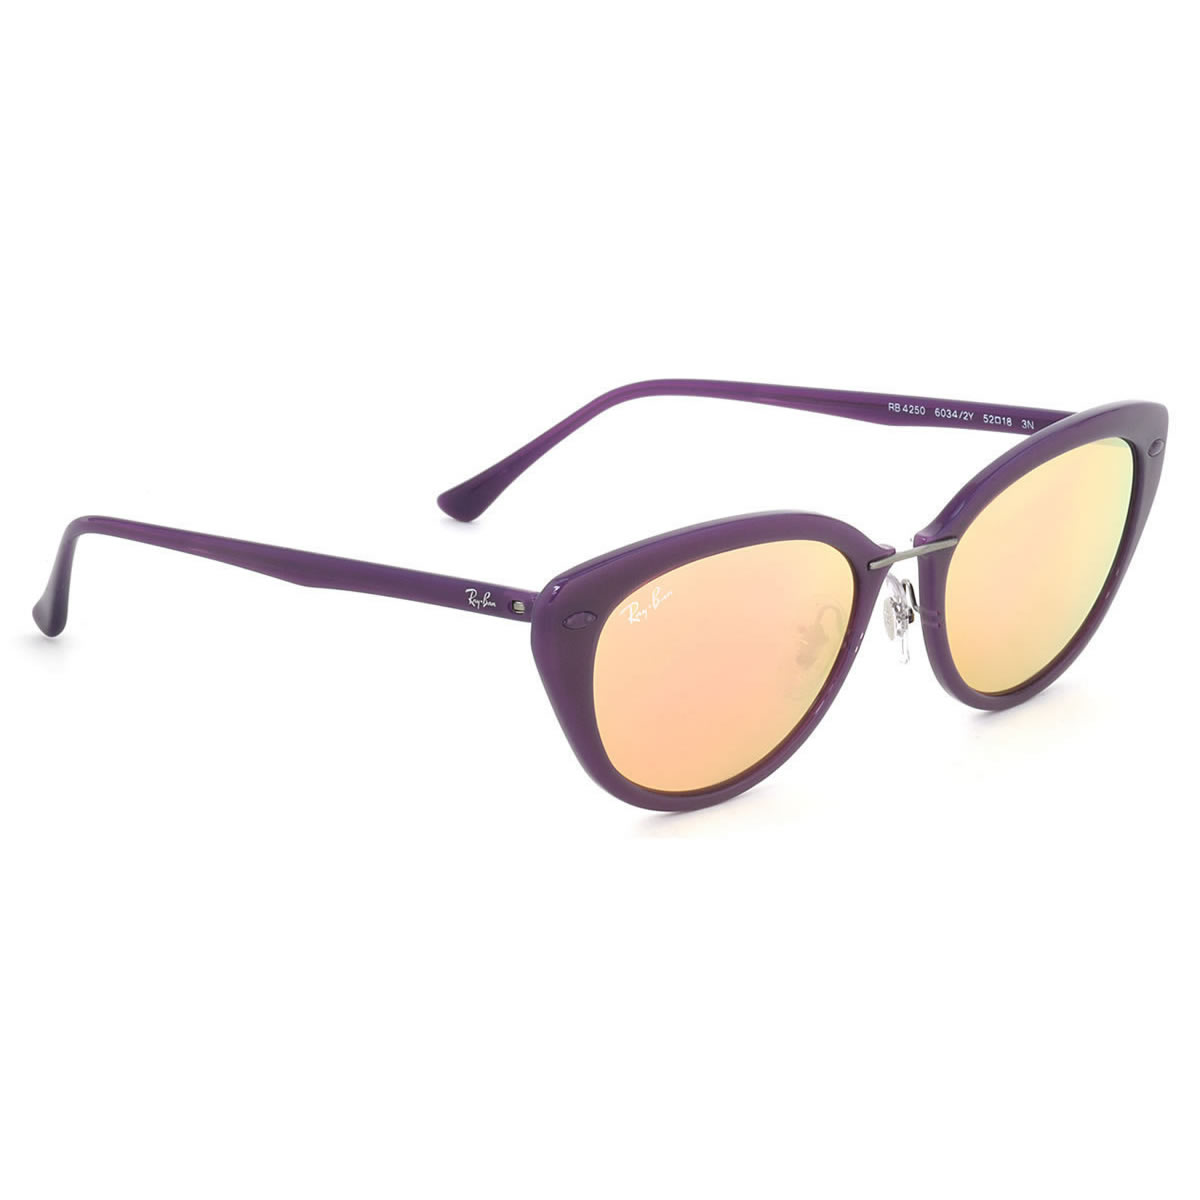 478ee1e14f Ray-Ban Sunglasses RB4250 60342Y 52size TECH LIGHT RAY GENUINE NEW rayban  ray ban